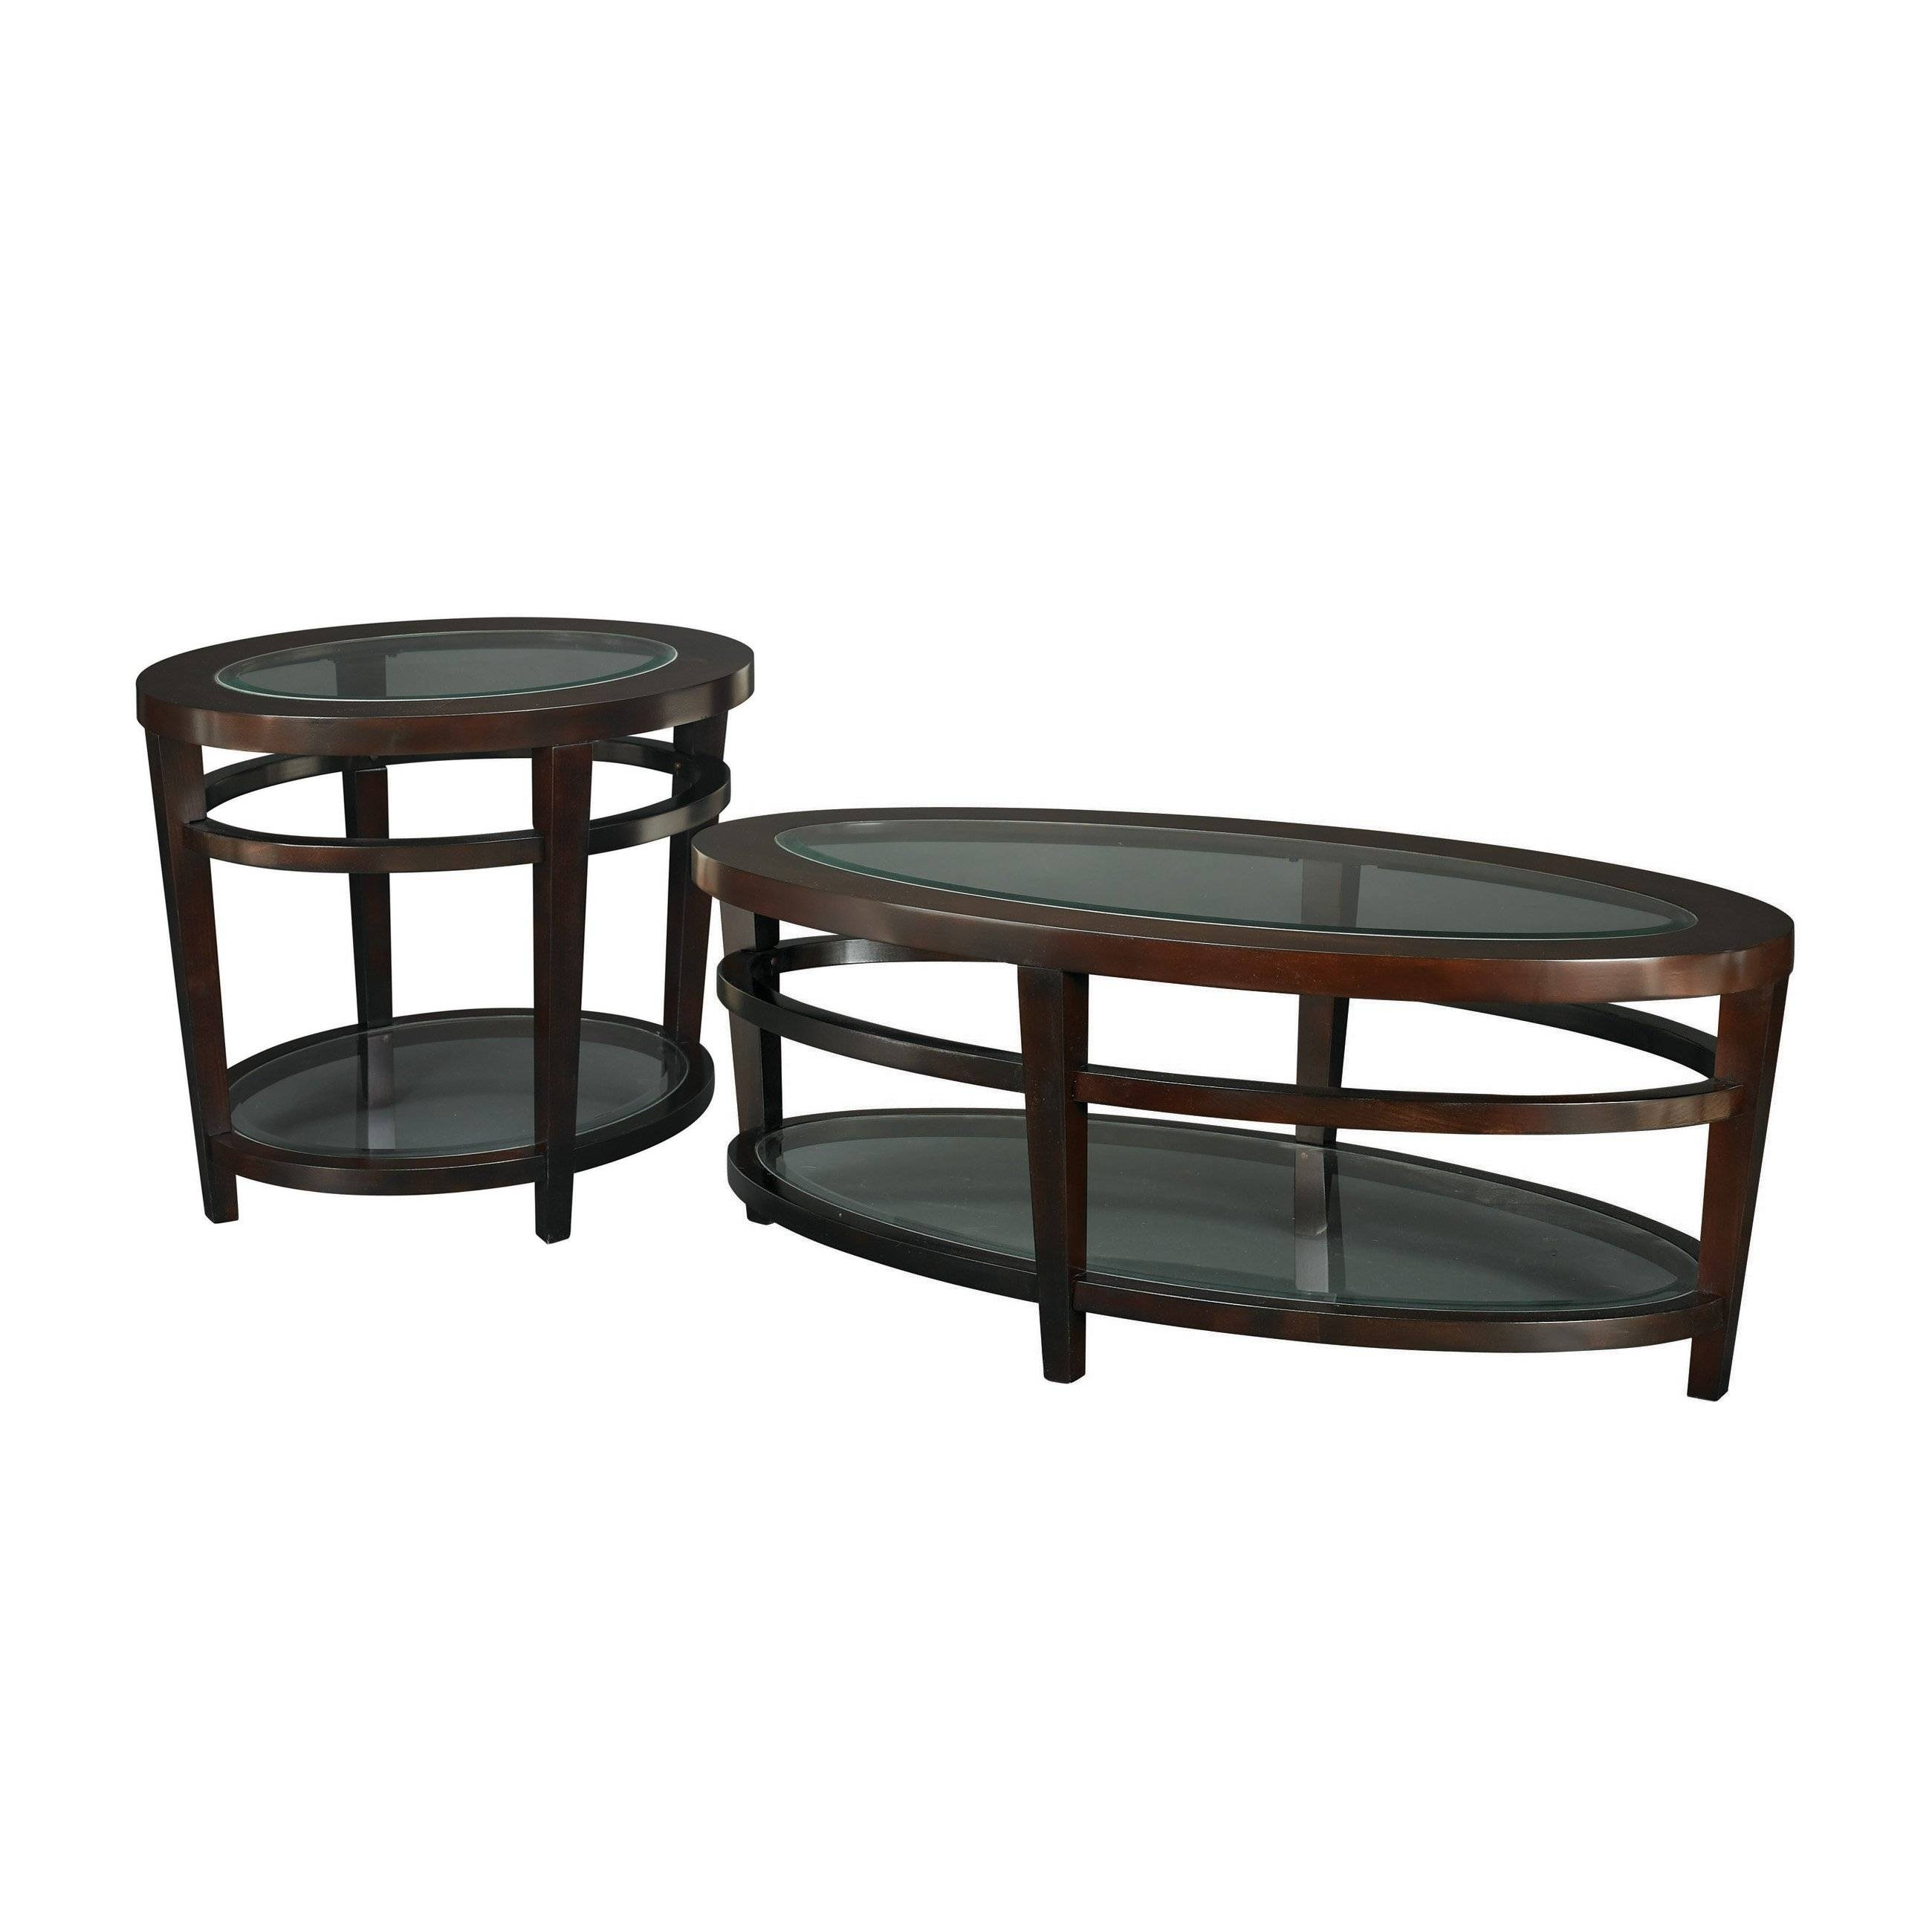 Hammary Oasis 2-Piece Oval Coffee Table Set | Hayneedle for 2 Piece Coffee Table Sets (Image 22 of 30)